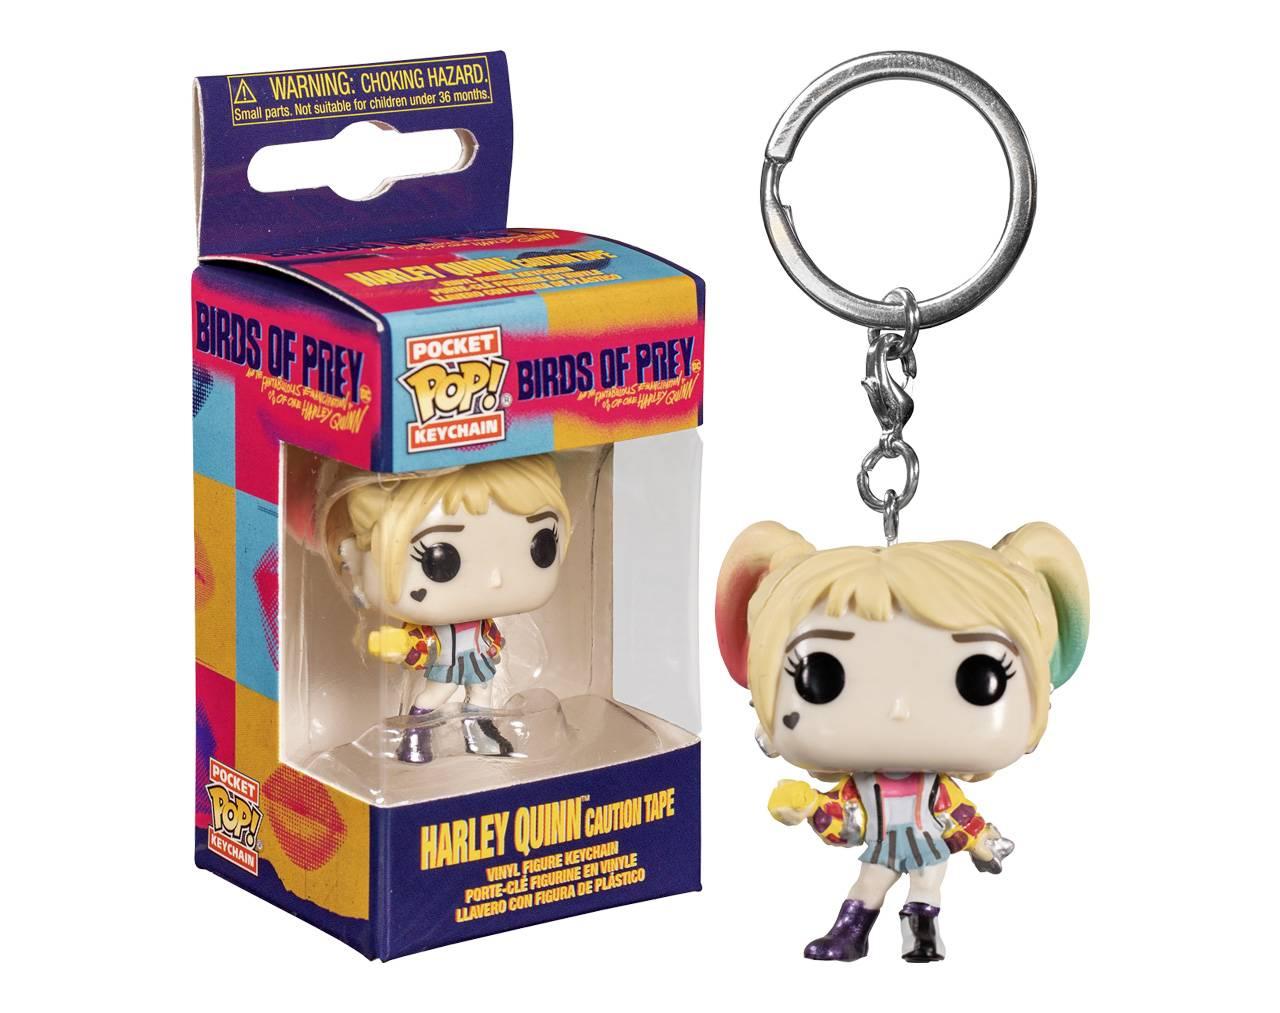 Harley Quinn with Caution Tape (Llavero) Pop! Vinyl